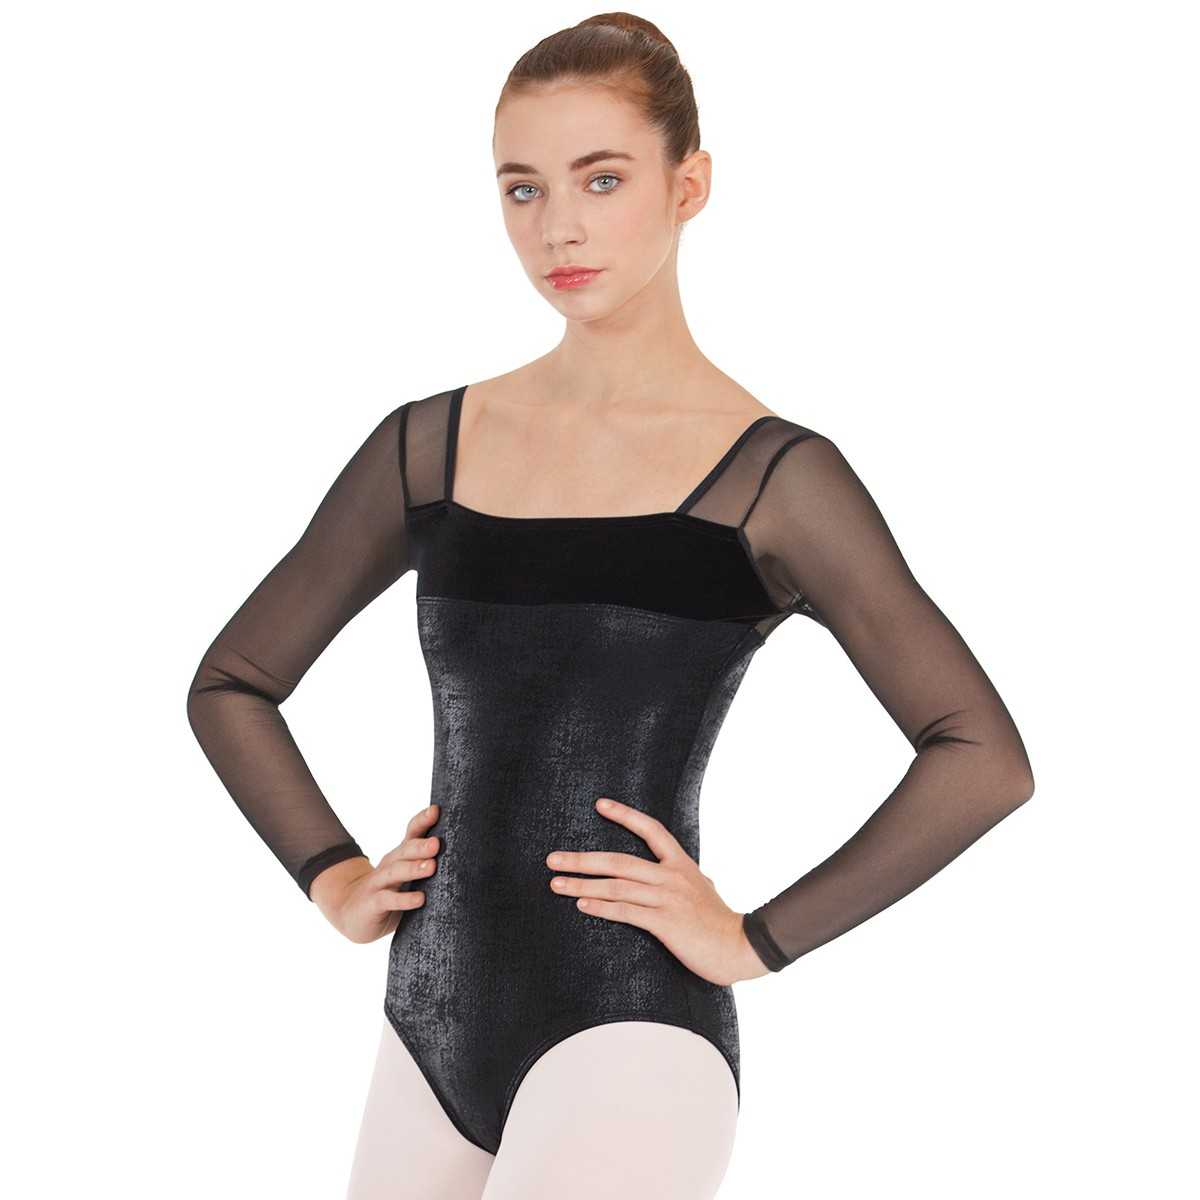 179ea4279ad5 Adult Dimensional Mesh Sleeve Leotard. Loading zoom